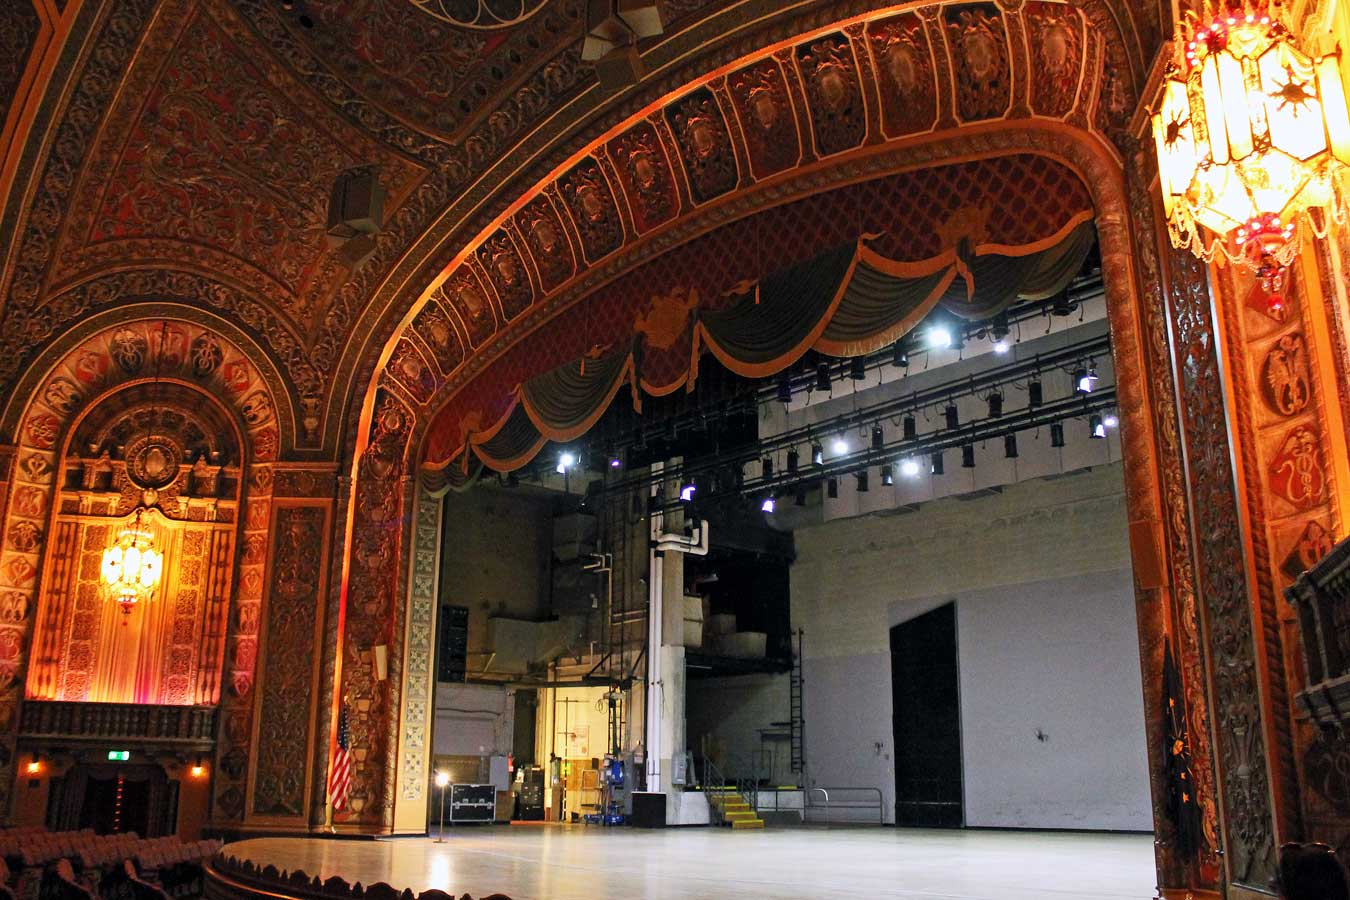 Embassy Theatre - Fort Wayne, Indiana // The Weekend Getaway You've Overlooked: Visit Fort Wayne, Indiana [via Wading in Big Shoes] // Located equidistantly from Chicago, Cincinnati, and Detroit, Fort Wayne, Indiana is a fun midwest destination that captures a perfect blend of city, nature, and local flavors! See what I experienced on my trip to Fort Wayne and learn what makes Indiana's second-largest city the perfect spot for a weekend getaway.